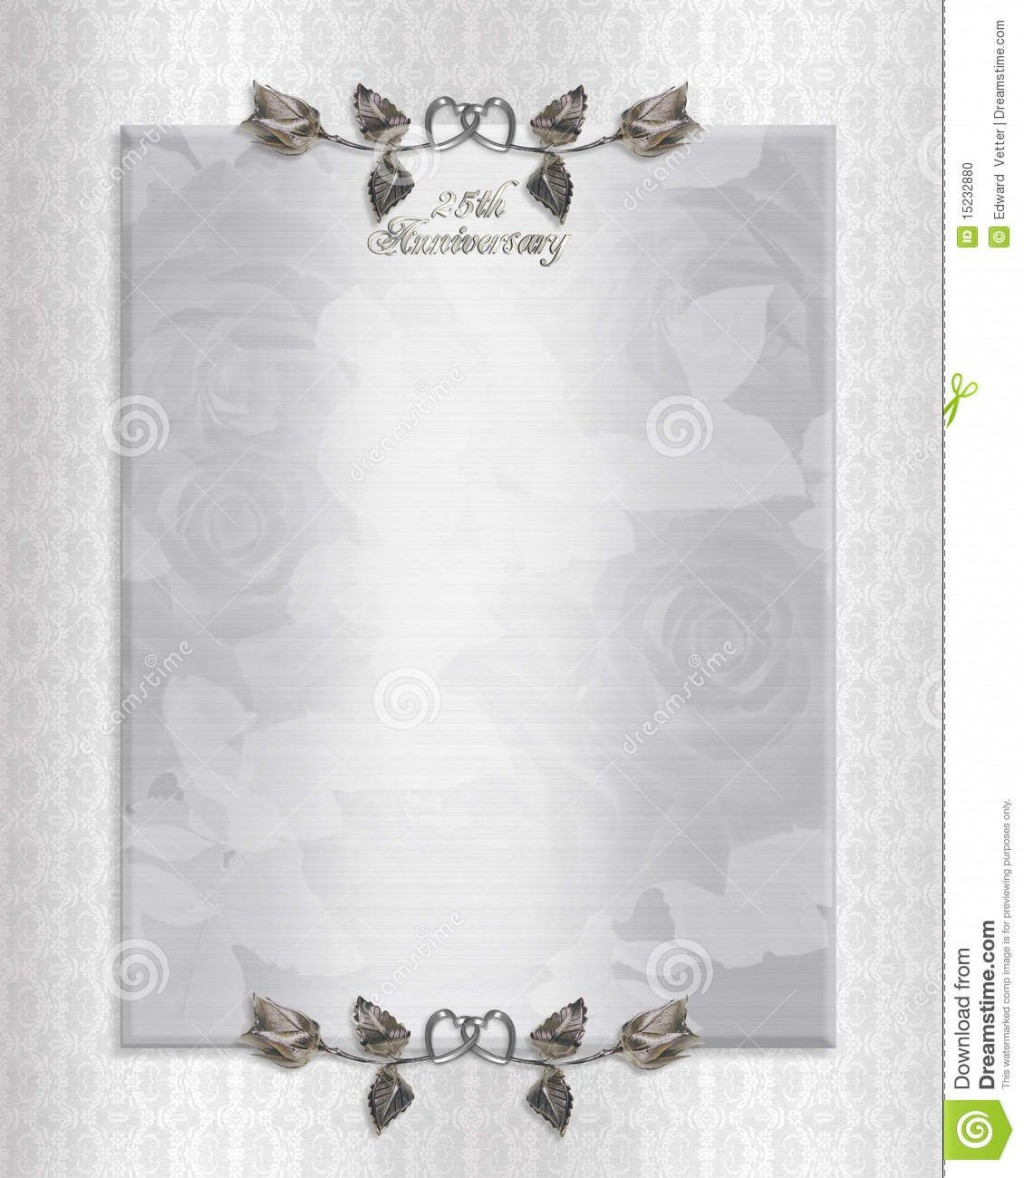 002 Unusual 50th Anniversary Invitation Template Free Highest Clarity  For Word Golden Wedding DownloadLarge